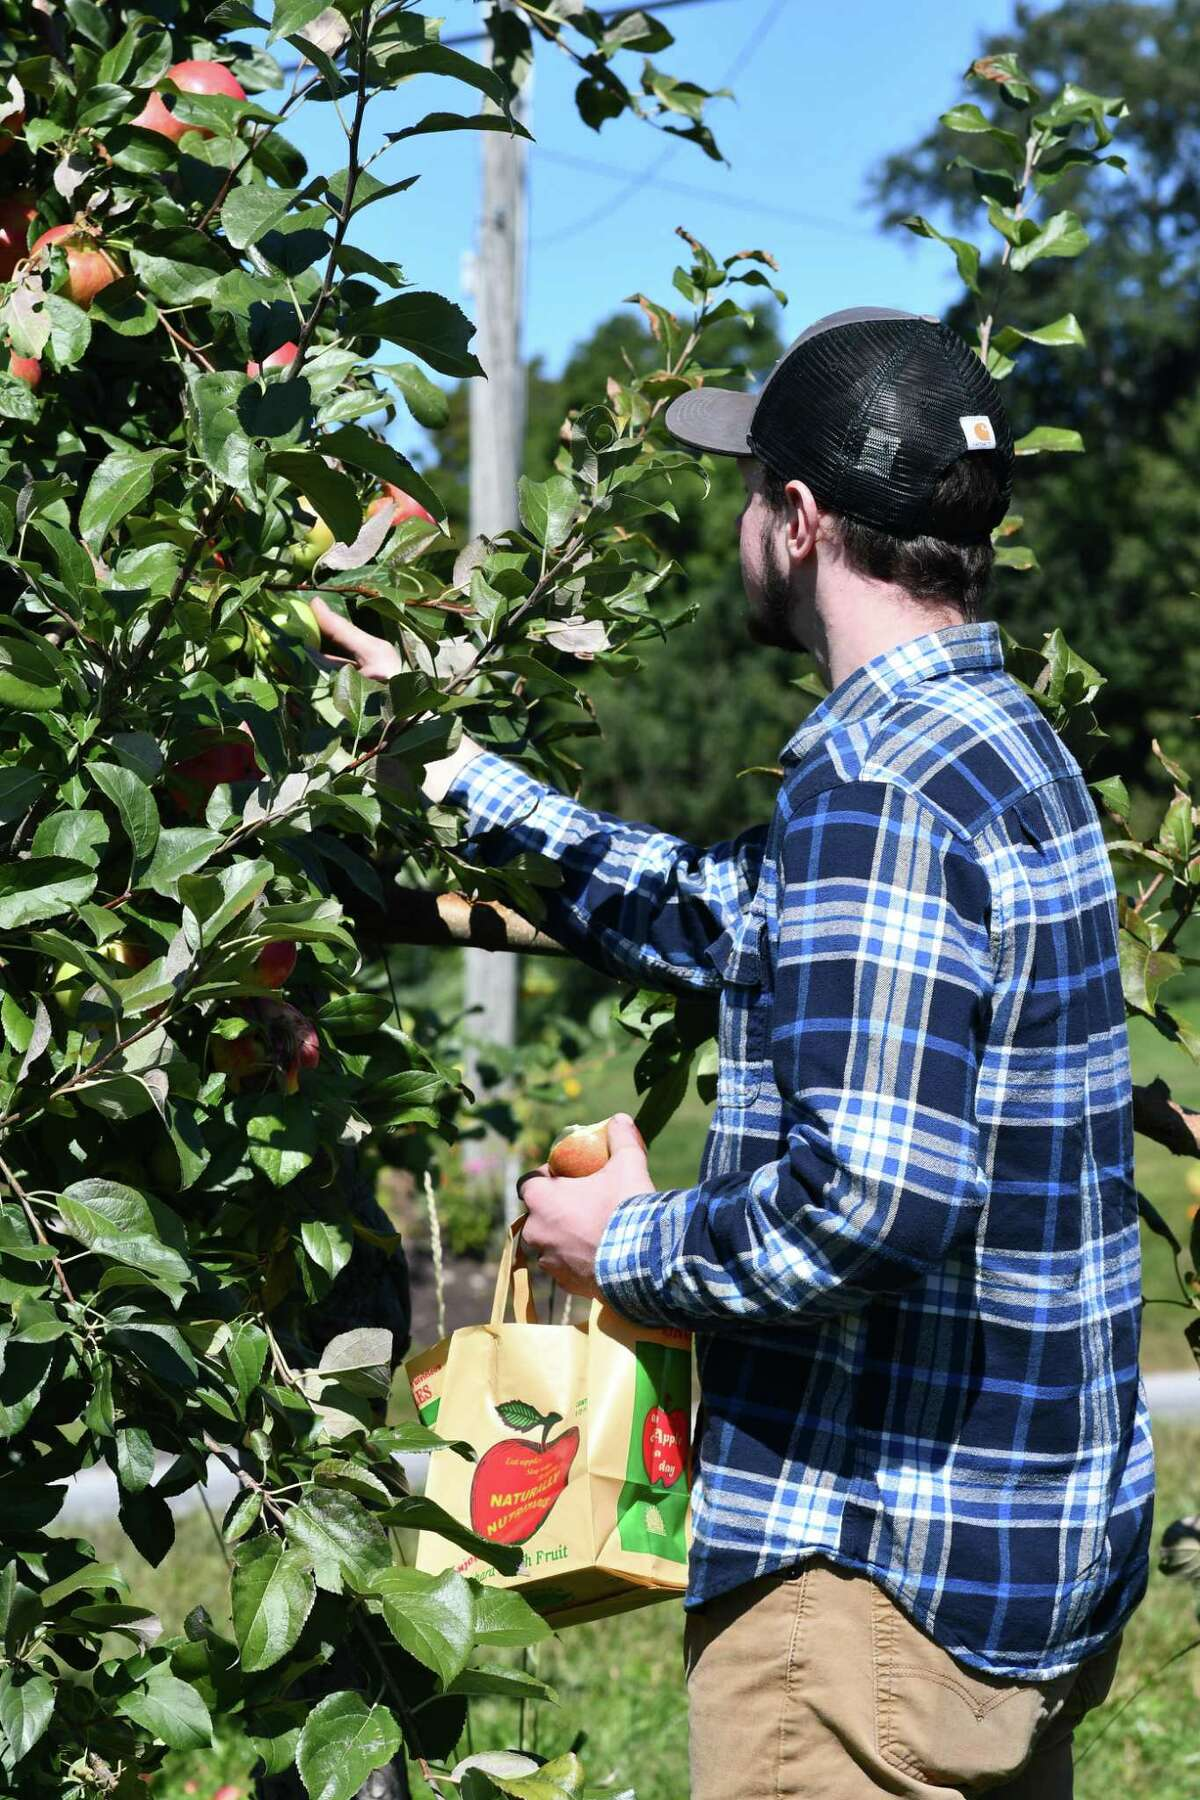 March Farms welcomed guests to their orchard Saturday for apple-picking. The season is in full swing now and the trees are full of ripe fruit.